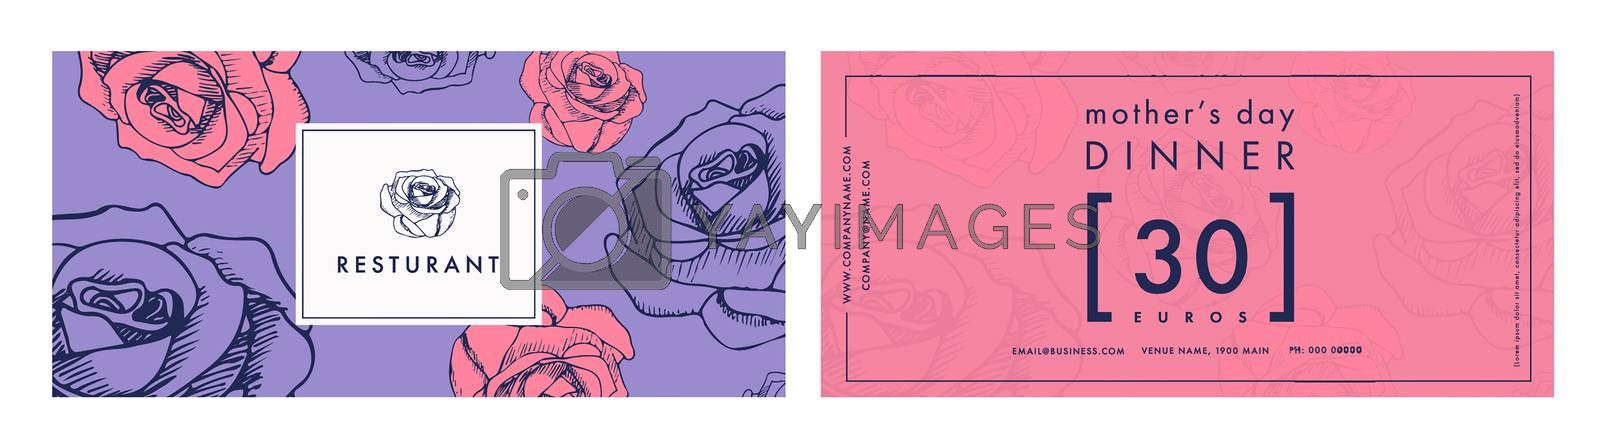 Vector image of greeting card with mothers day message